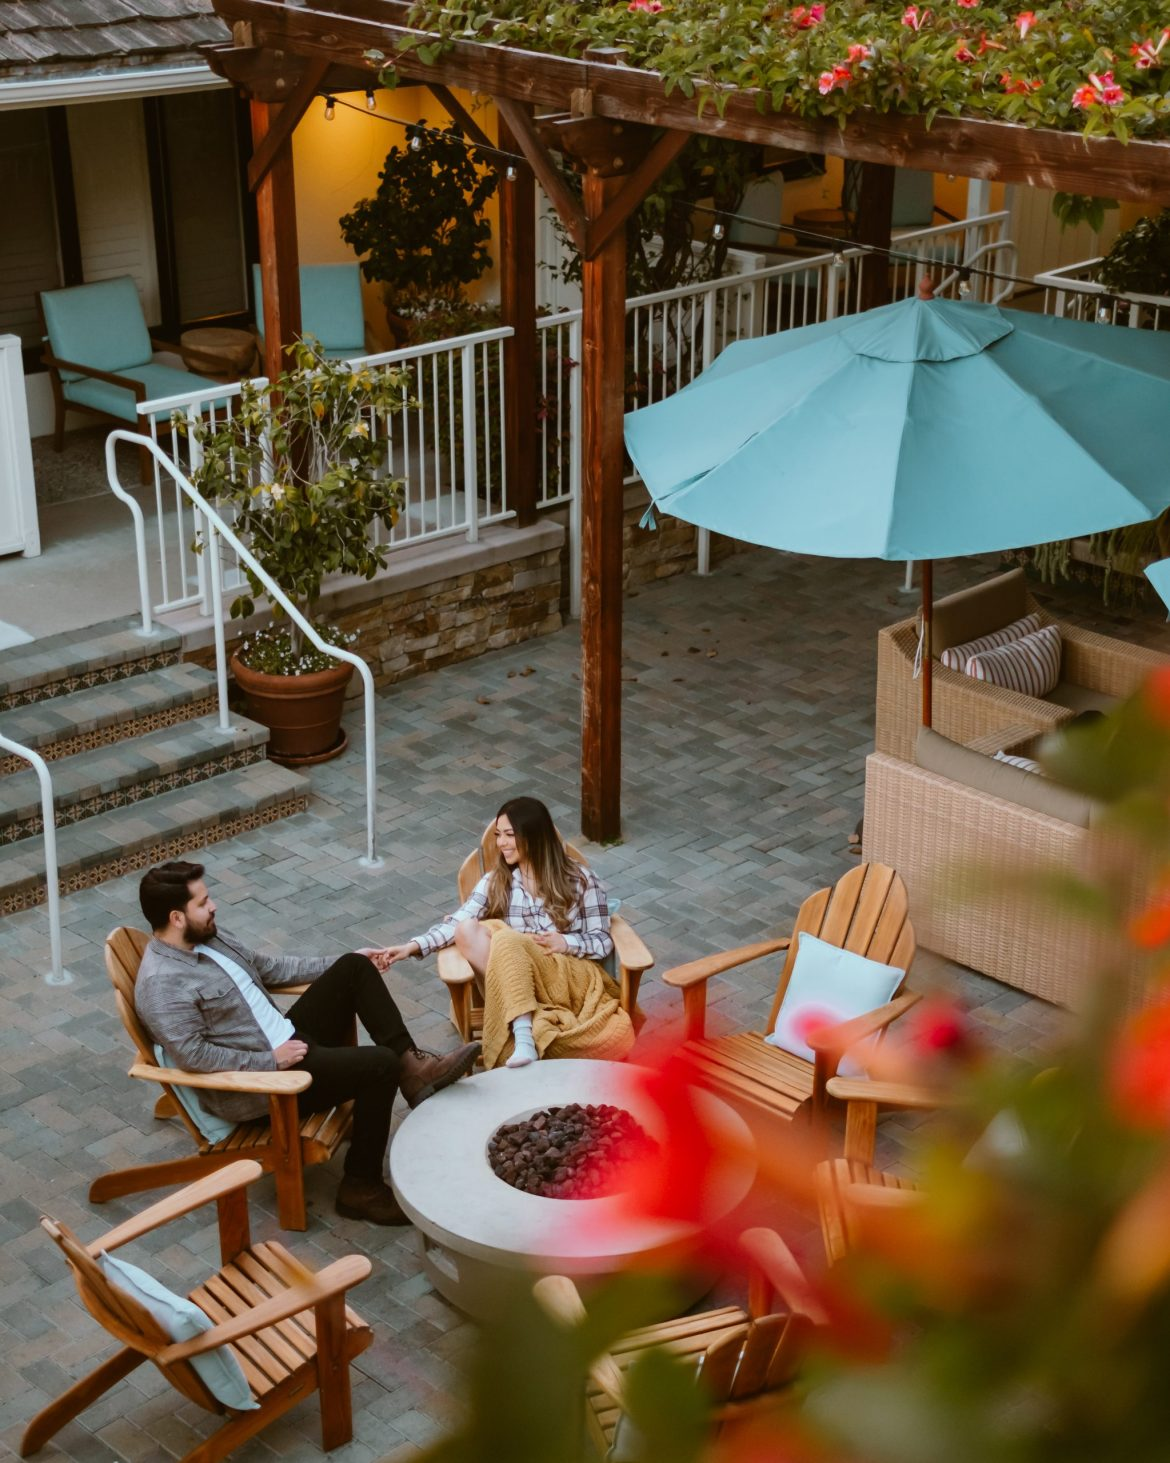 8 Highlights from the dreamiest stay at The Hotel Carmel - dreamy hotel courtyard, couples photography